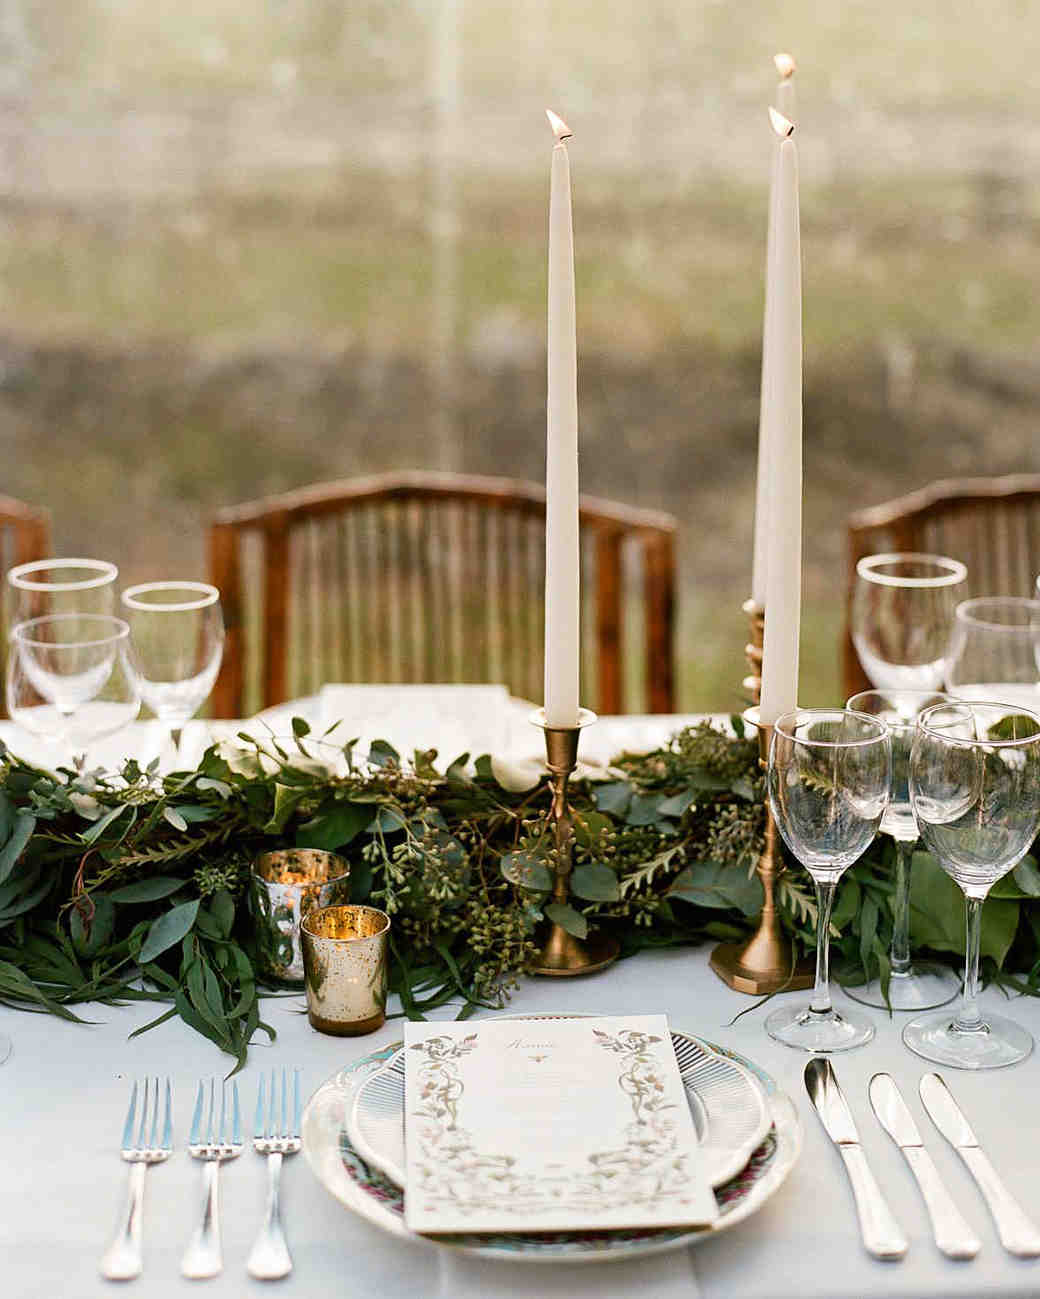 meg nick wedding placesetting